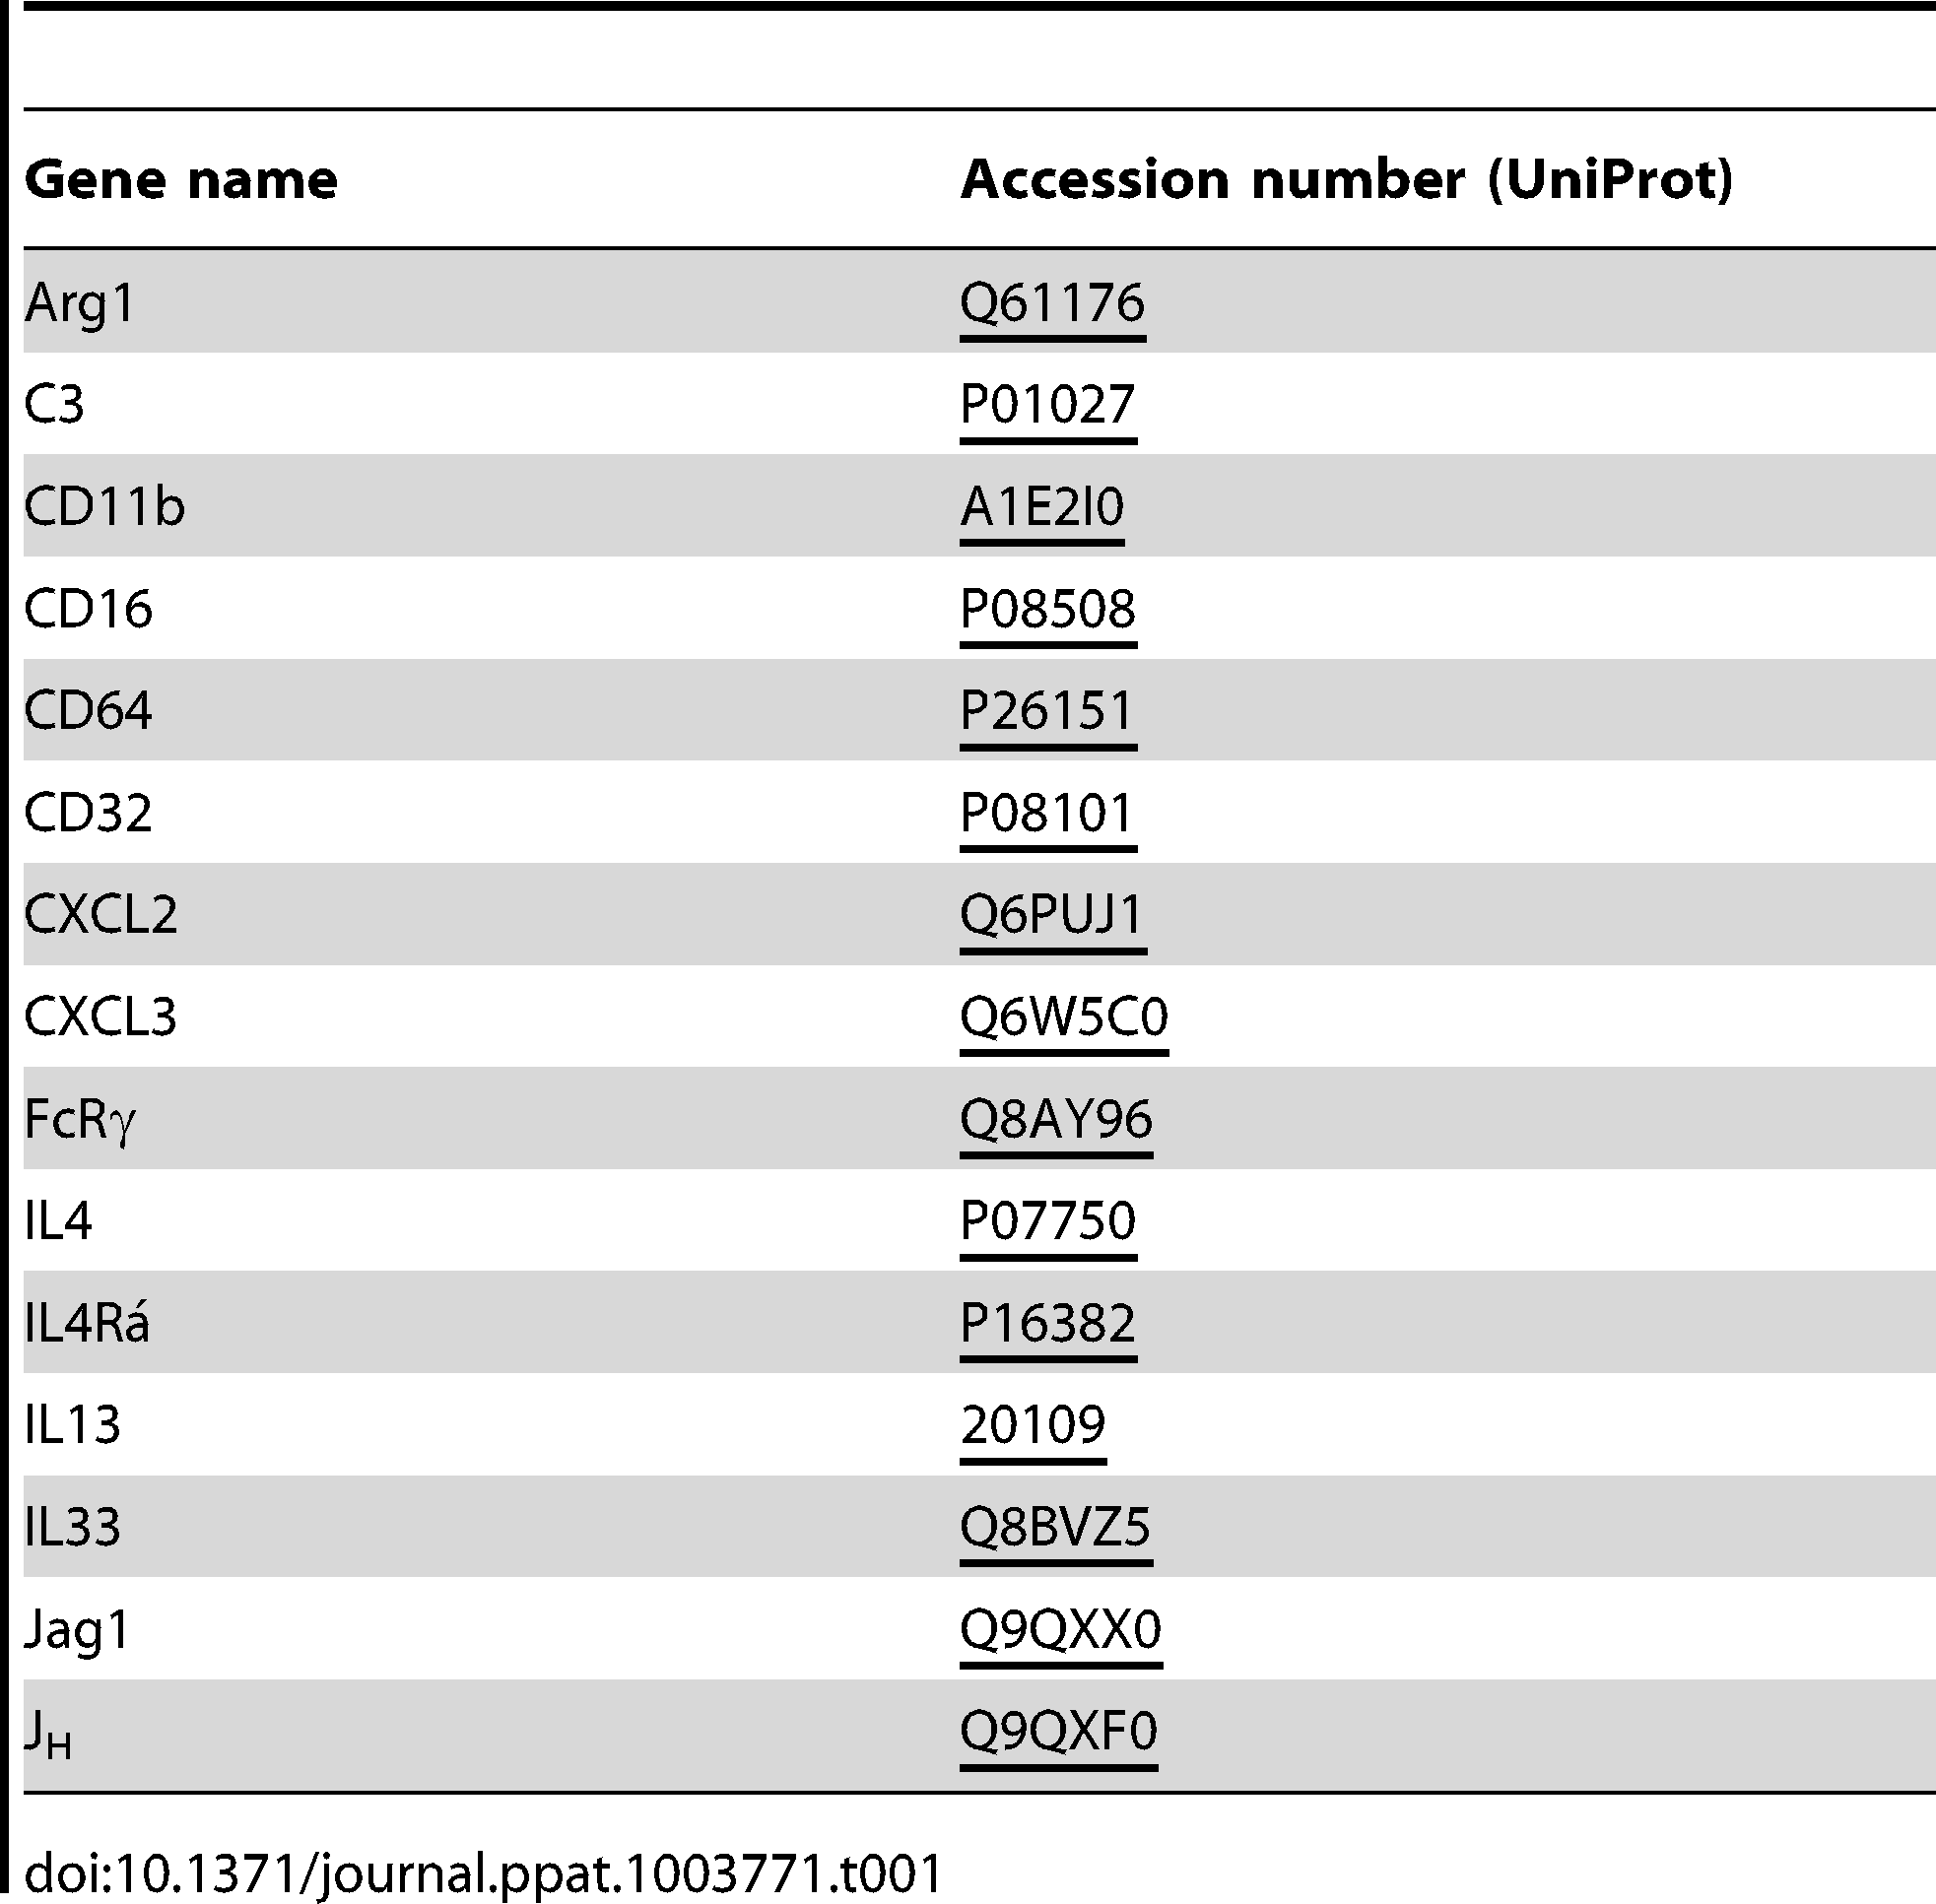 Accession numbers for abbreviations of gene name used in the text.